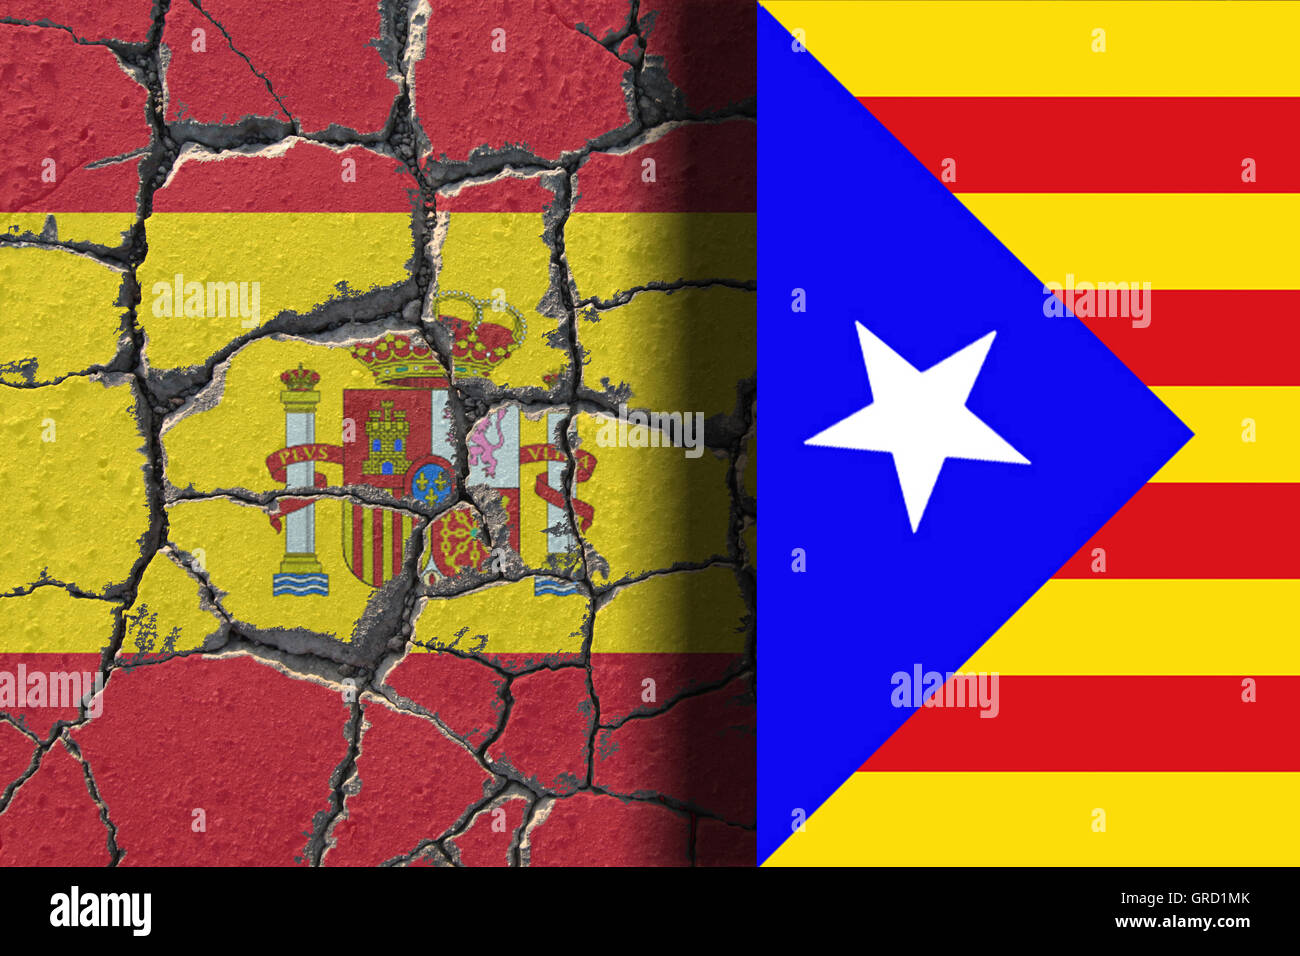 Eroding Flag Of Spain With Rising Estelada. The Spanish Unity Is Endangered By Separatism Of The Region Catalonia - Stock Image